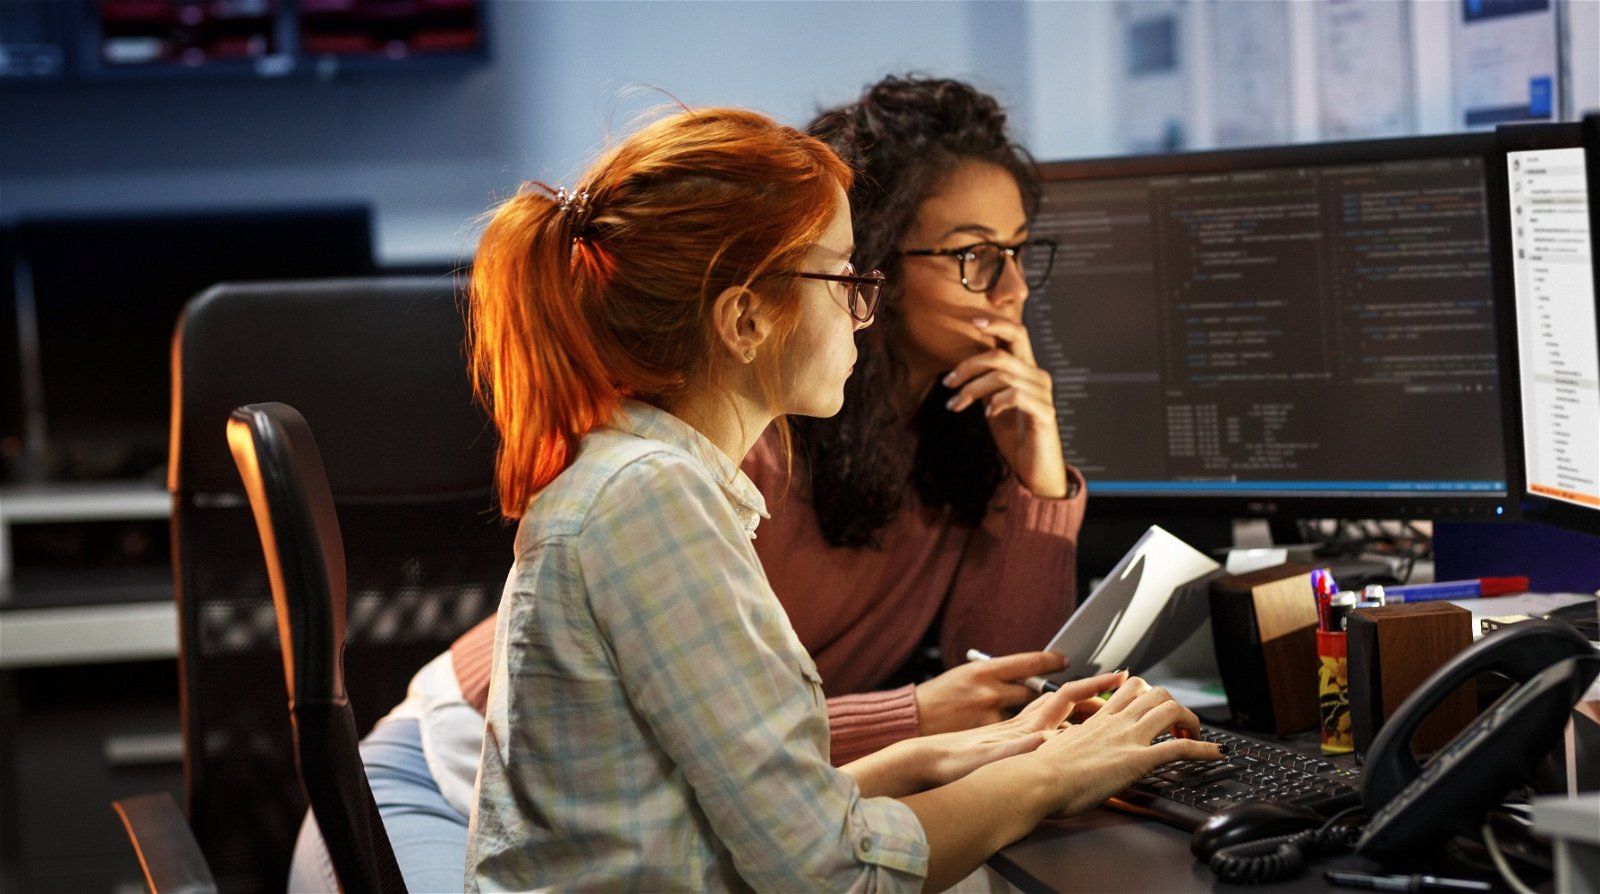 Women in Tech: Challenges to Overcome